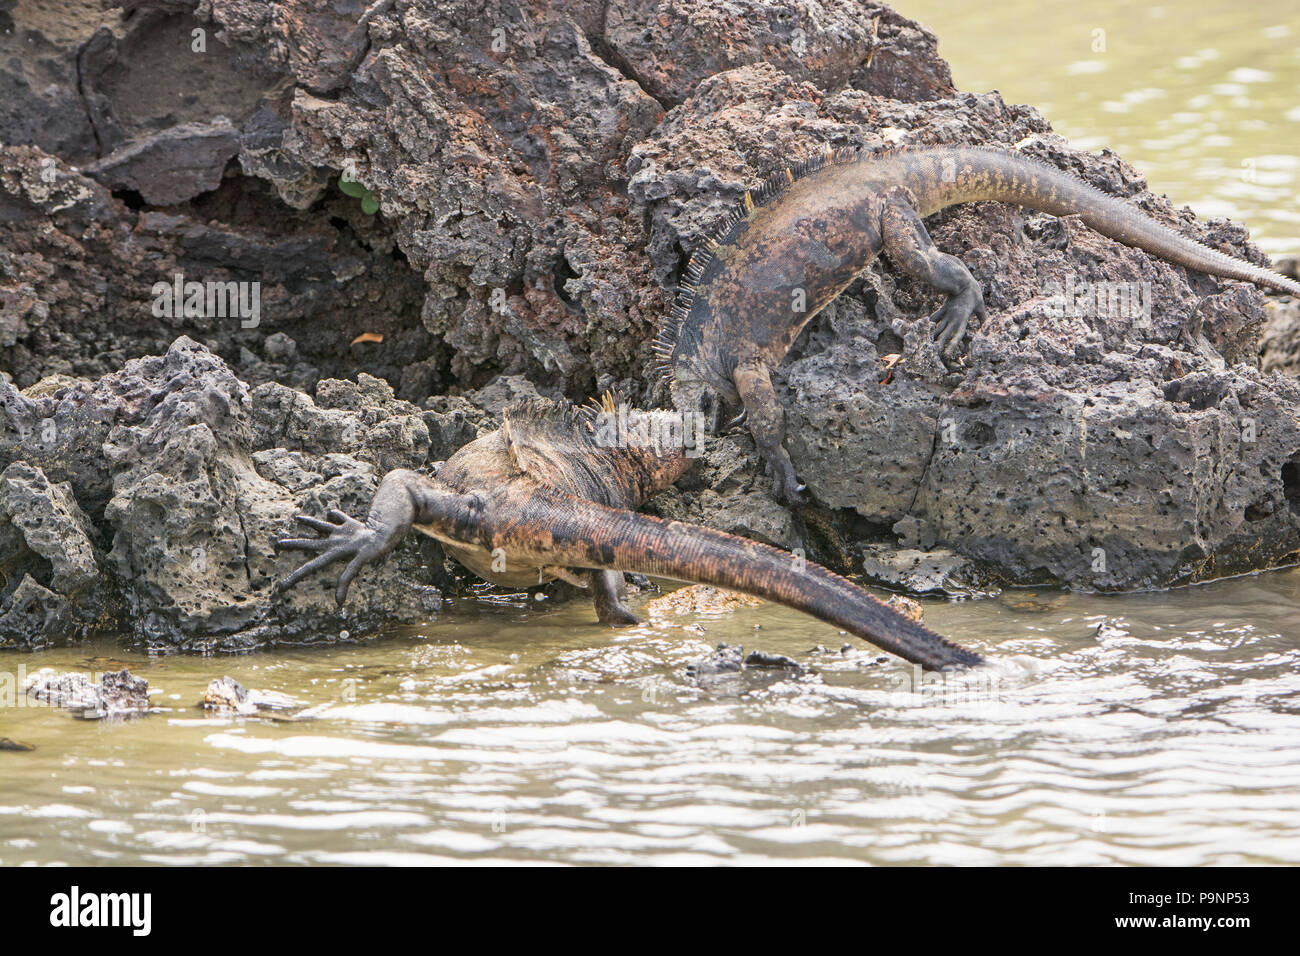 Marine Iguanas Fighting For Dominance in the Galapagos - Stock Image